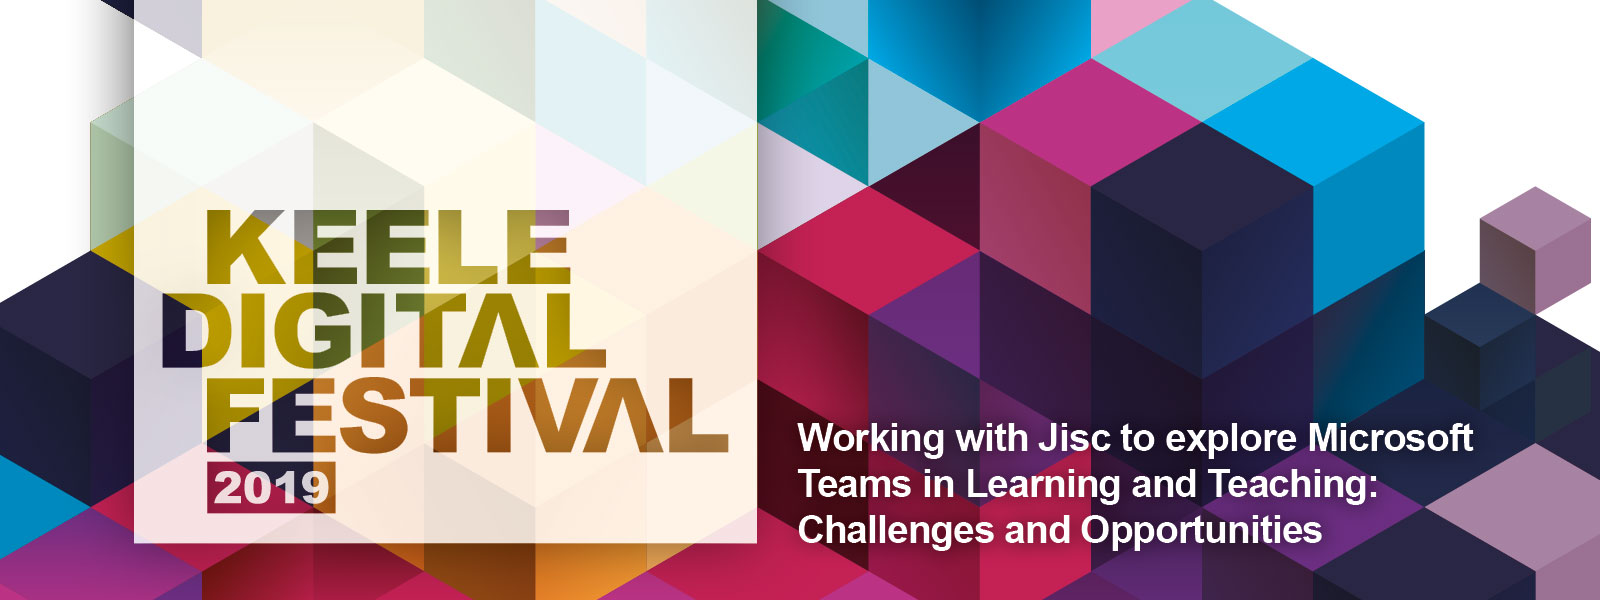 Keele Digital Festival Web Banner working with Jisc to explore Microsoft Teams in Learning and Teaching